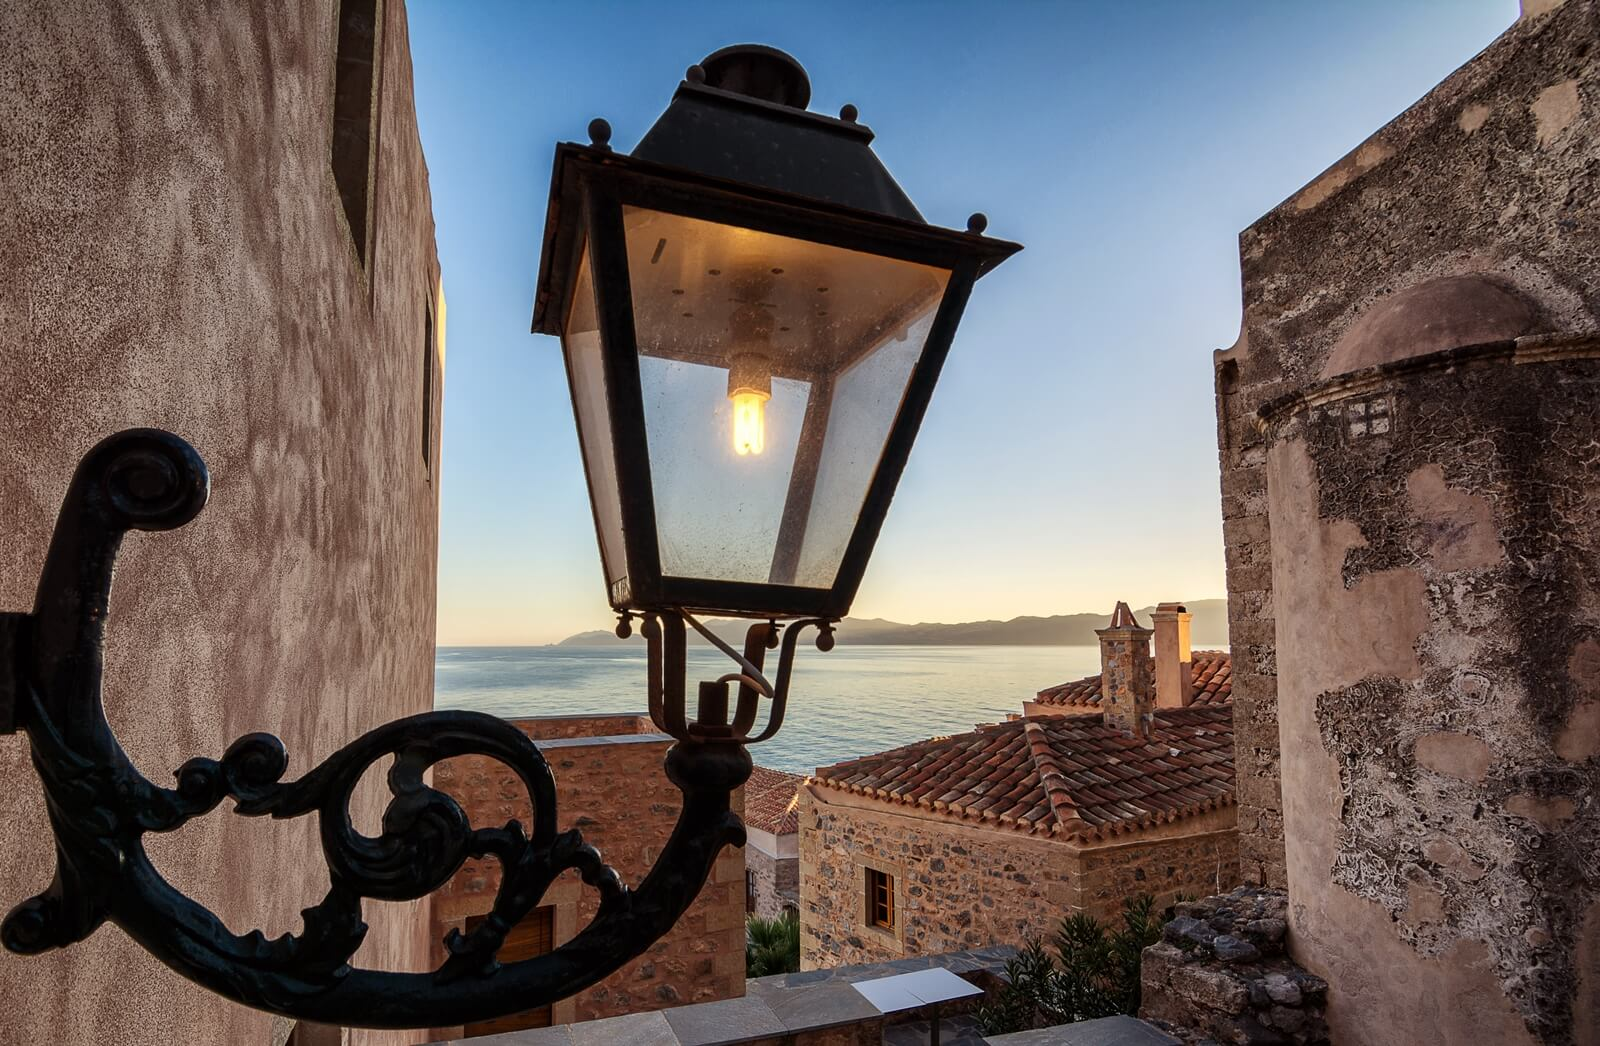 monemvasia-greece-lavienblog-allrightsreserved